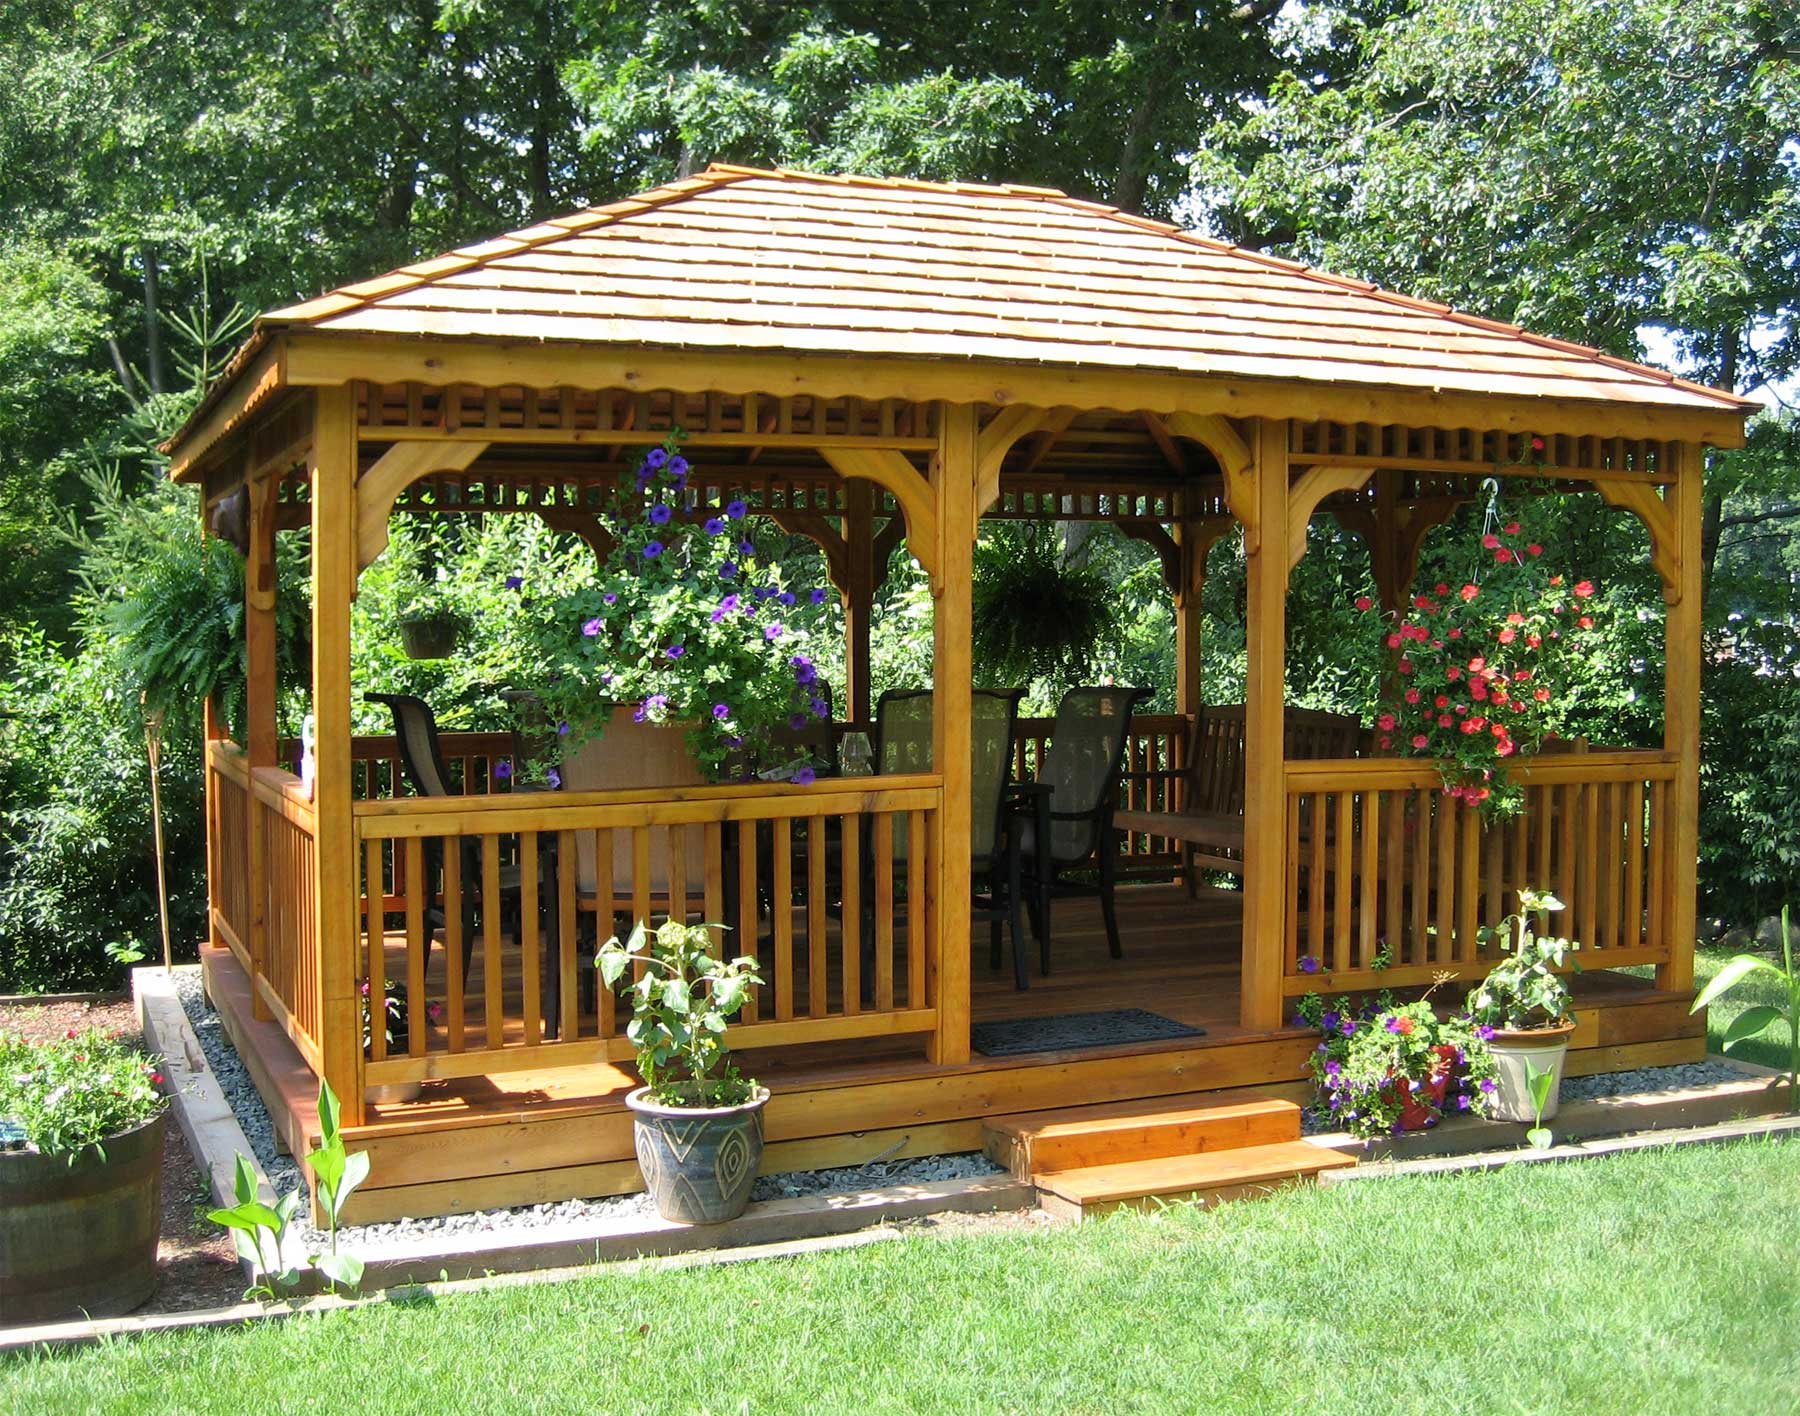 Gazebos wooden garden shed plans compliments of build backyard sheds shed plans kits - Build rectangular gazebo guide models ...